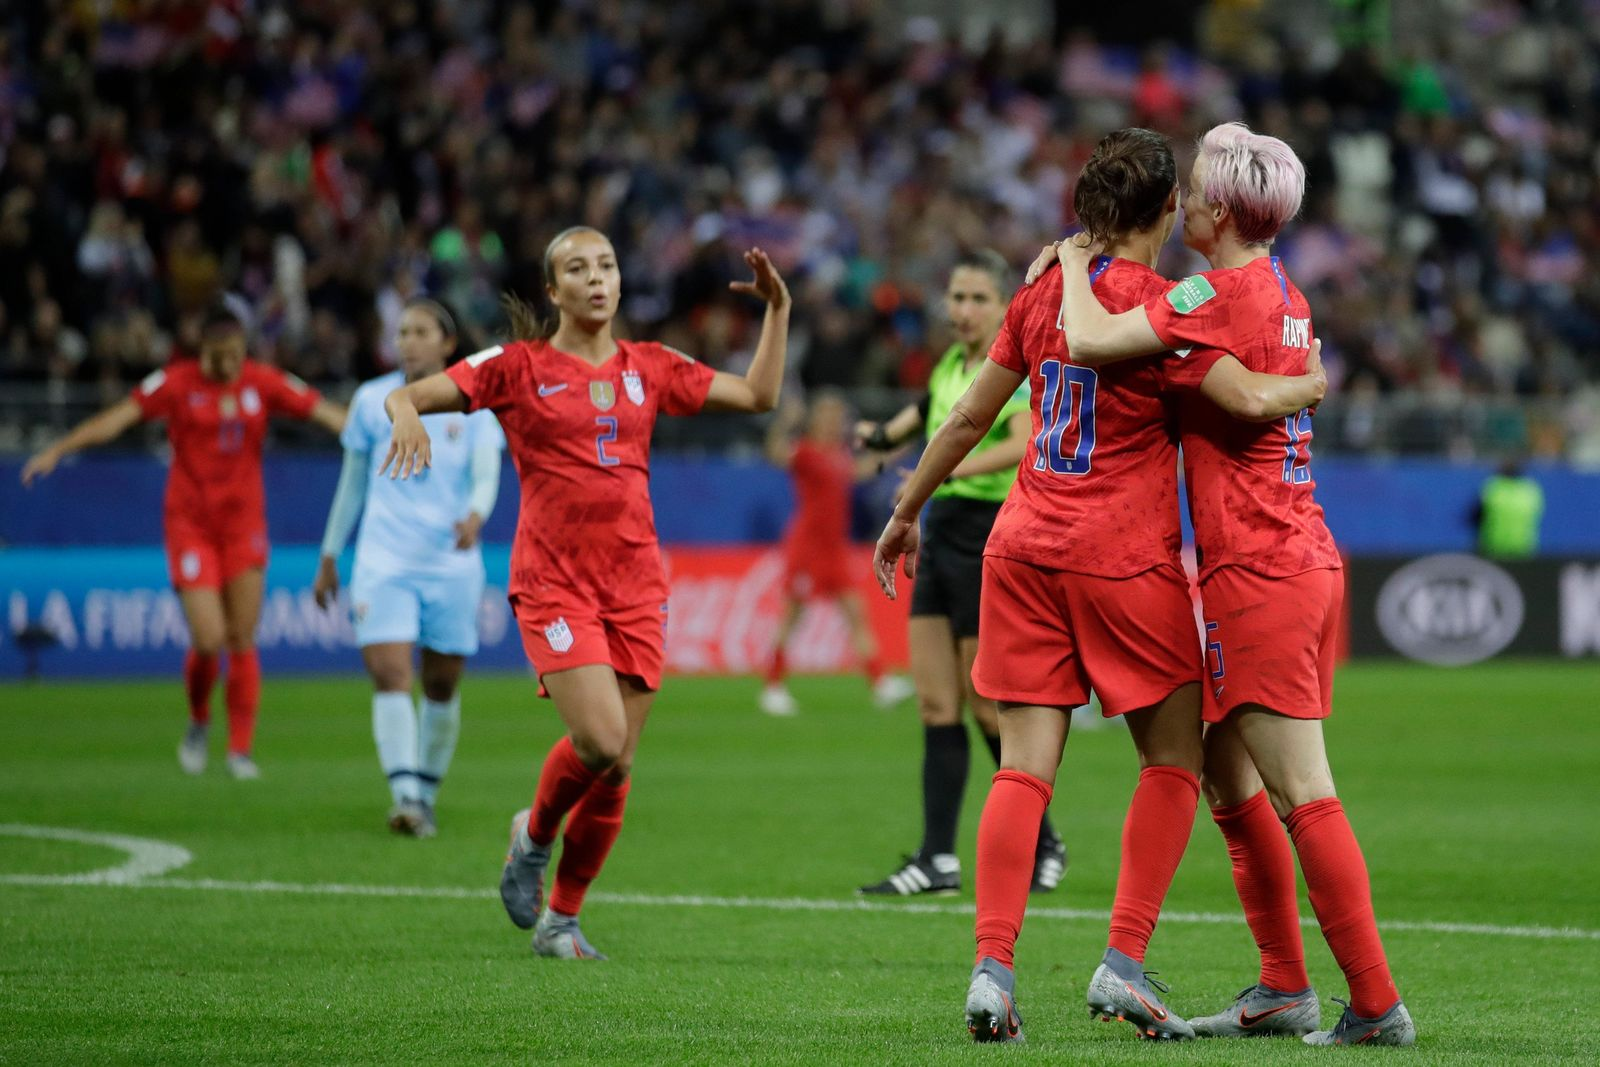 United States' Carli Lloyd, second from left, celebrates with her teammate Megan Rapinoe after scoring her side's 13th goal, during the Women's World Cup Group F soccer match between United States and Thailand at the Stade Auguste-Delaune in Reims, France, Tuesday, June 11, 2019. (AP Photo/Alessandra Tarantino)